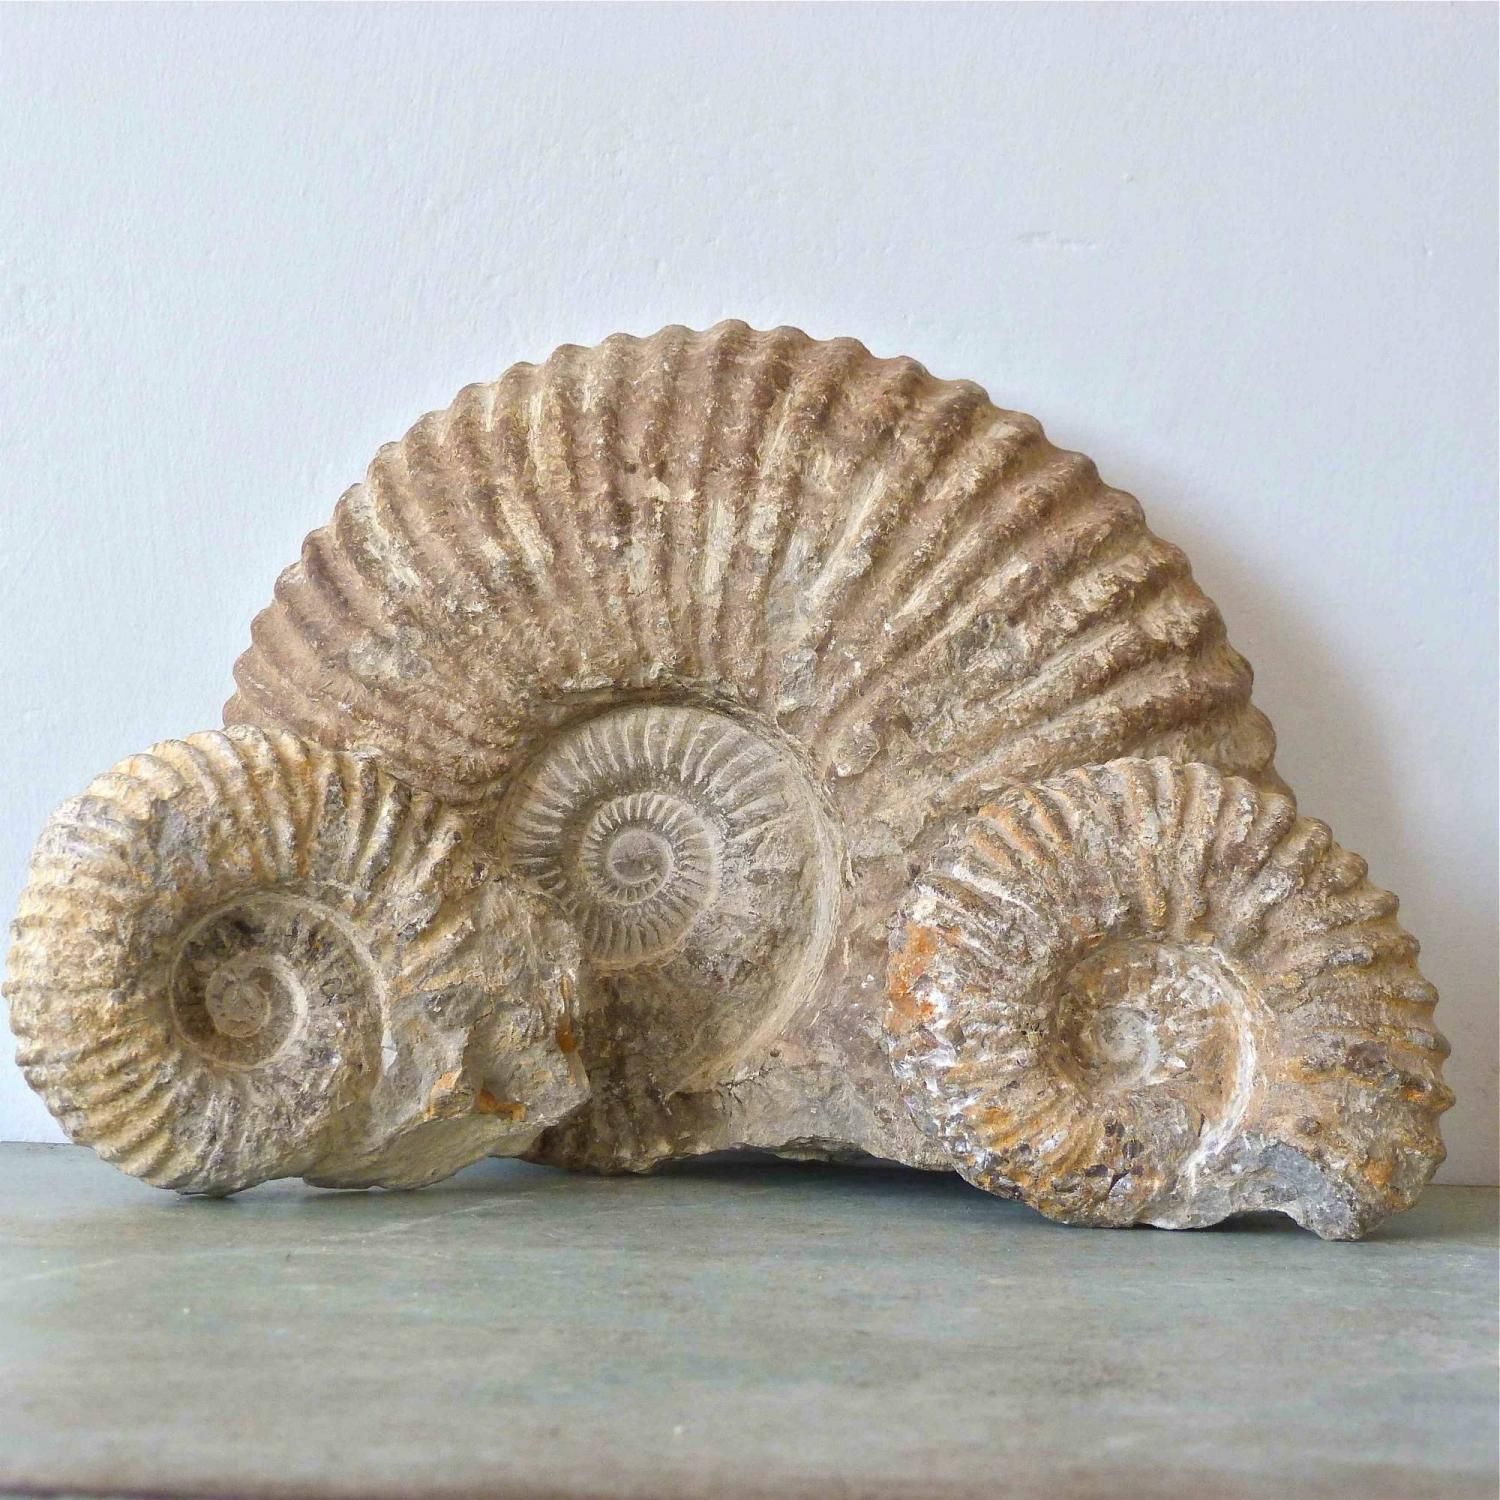 SET OF THREE MORTONICERAS AMMONITE FOSSILS